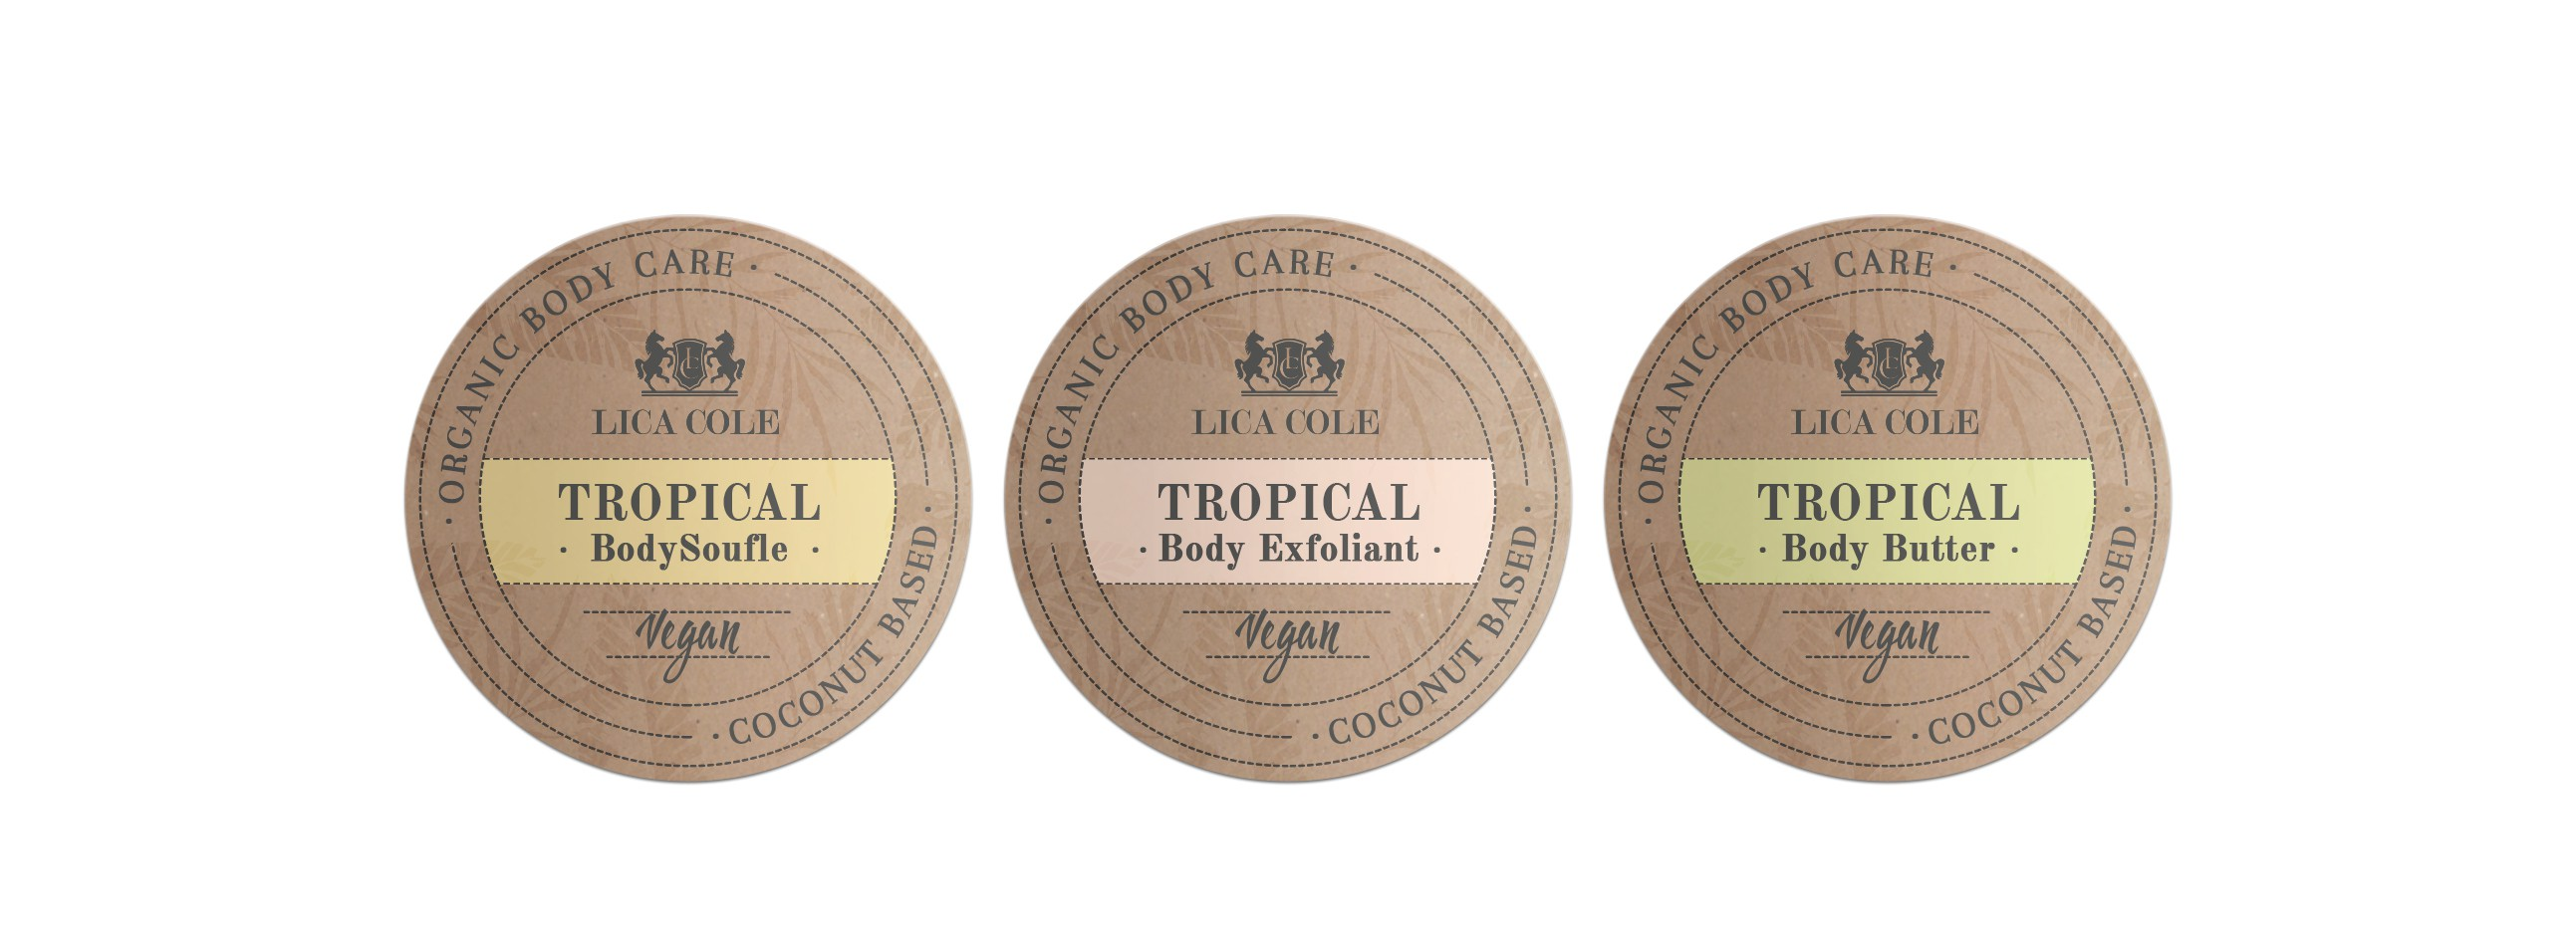 Luxury and Eco Label and Box Design for Coconut Based Body Product